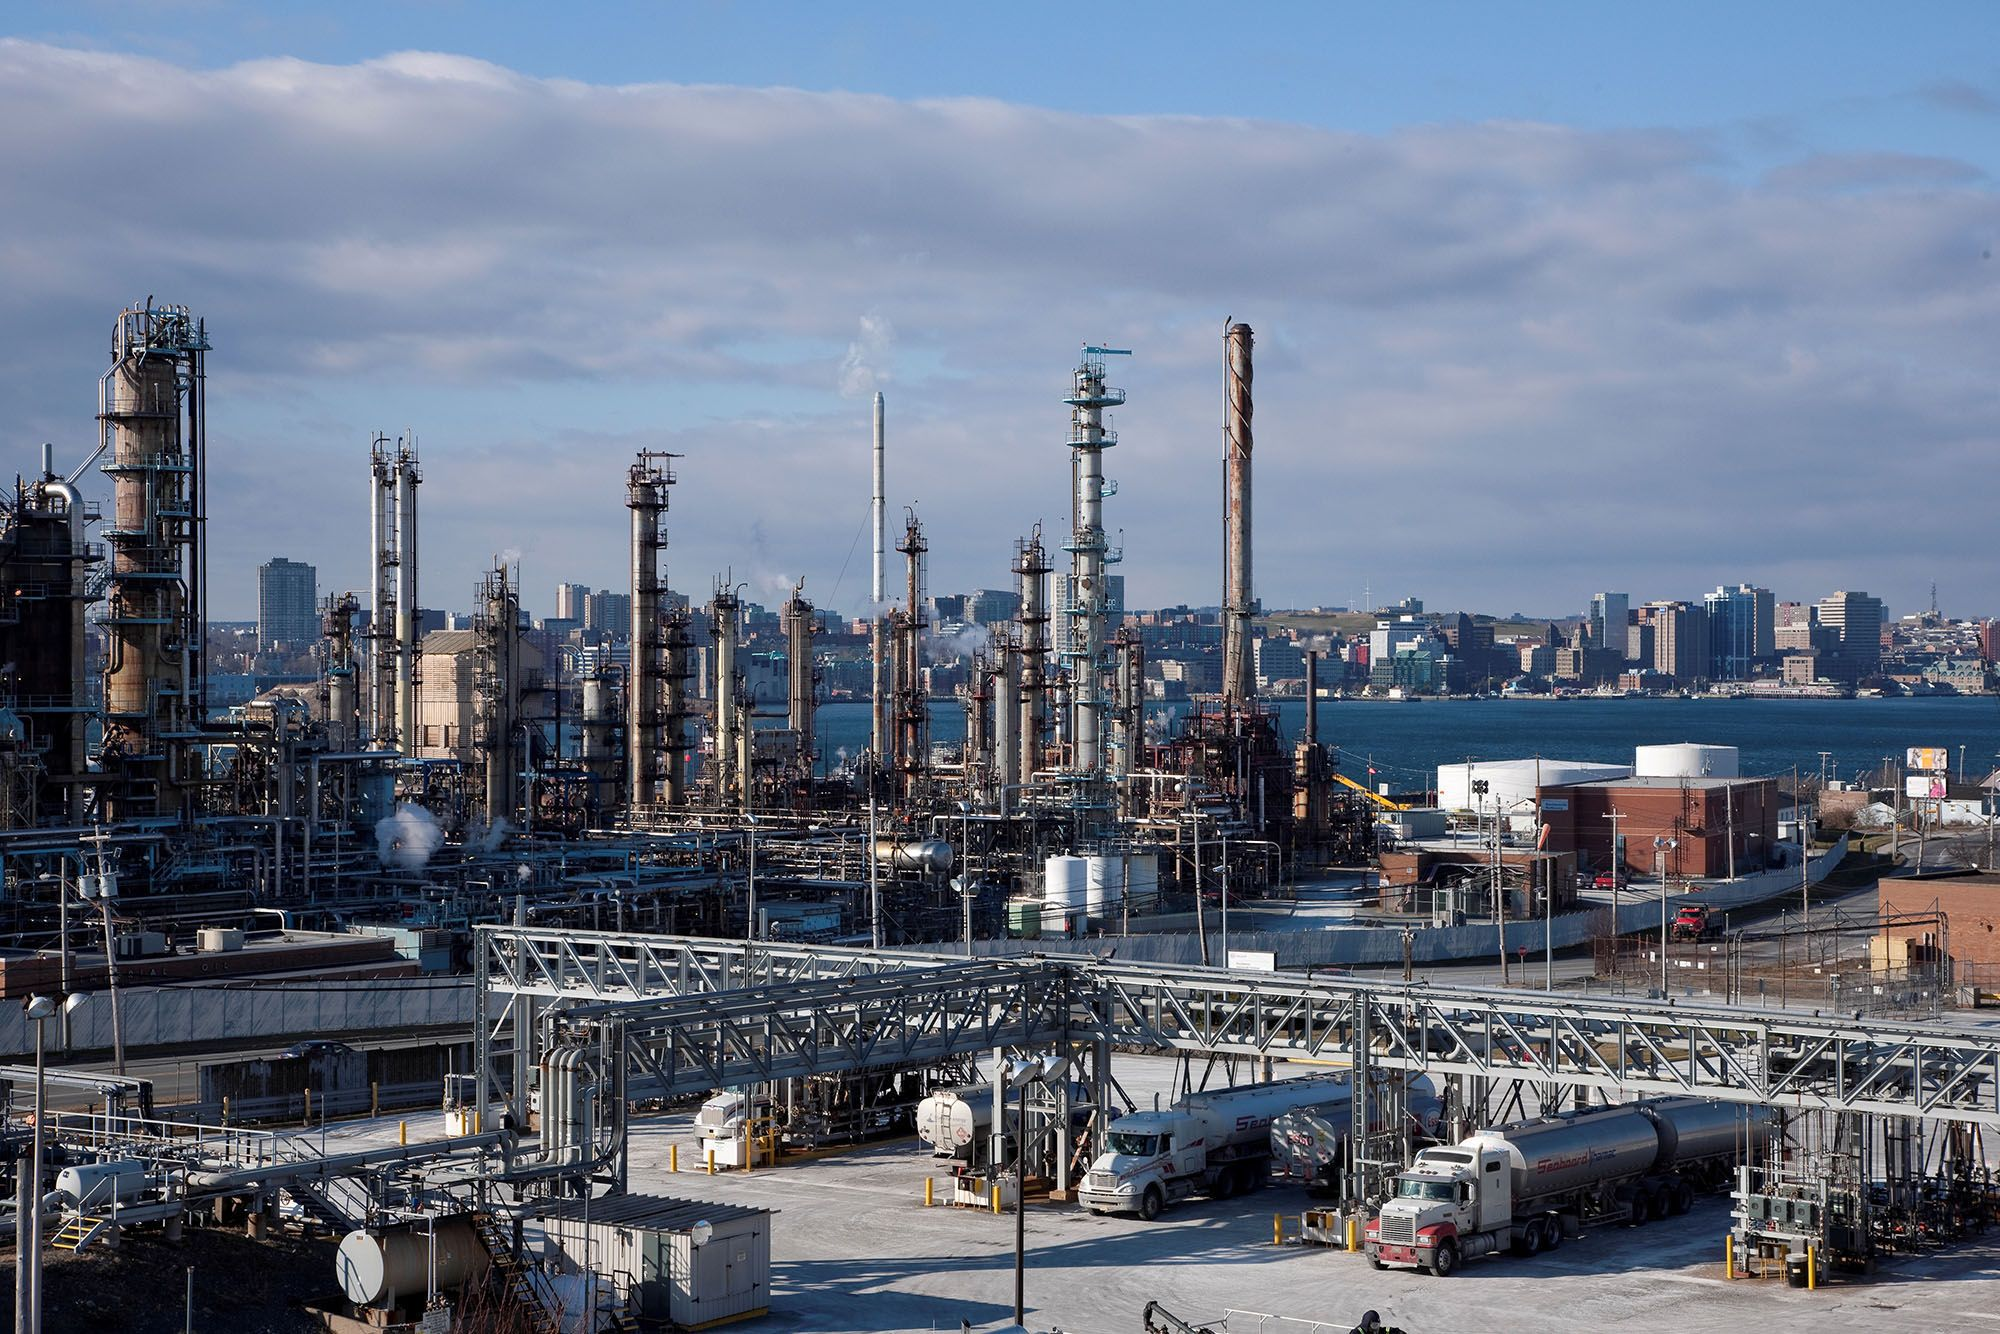 Looks like Imperial Oil is hutting down the refinery, and Converting to a  terminal operation